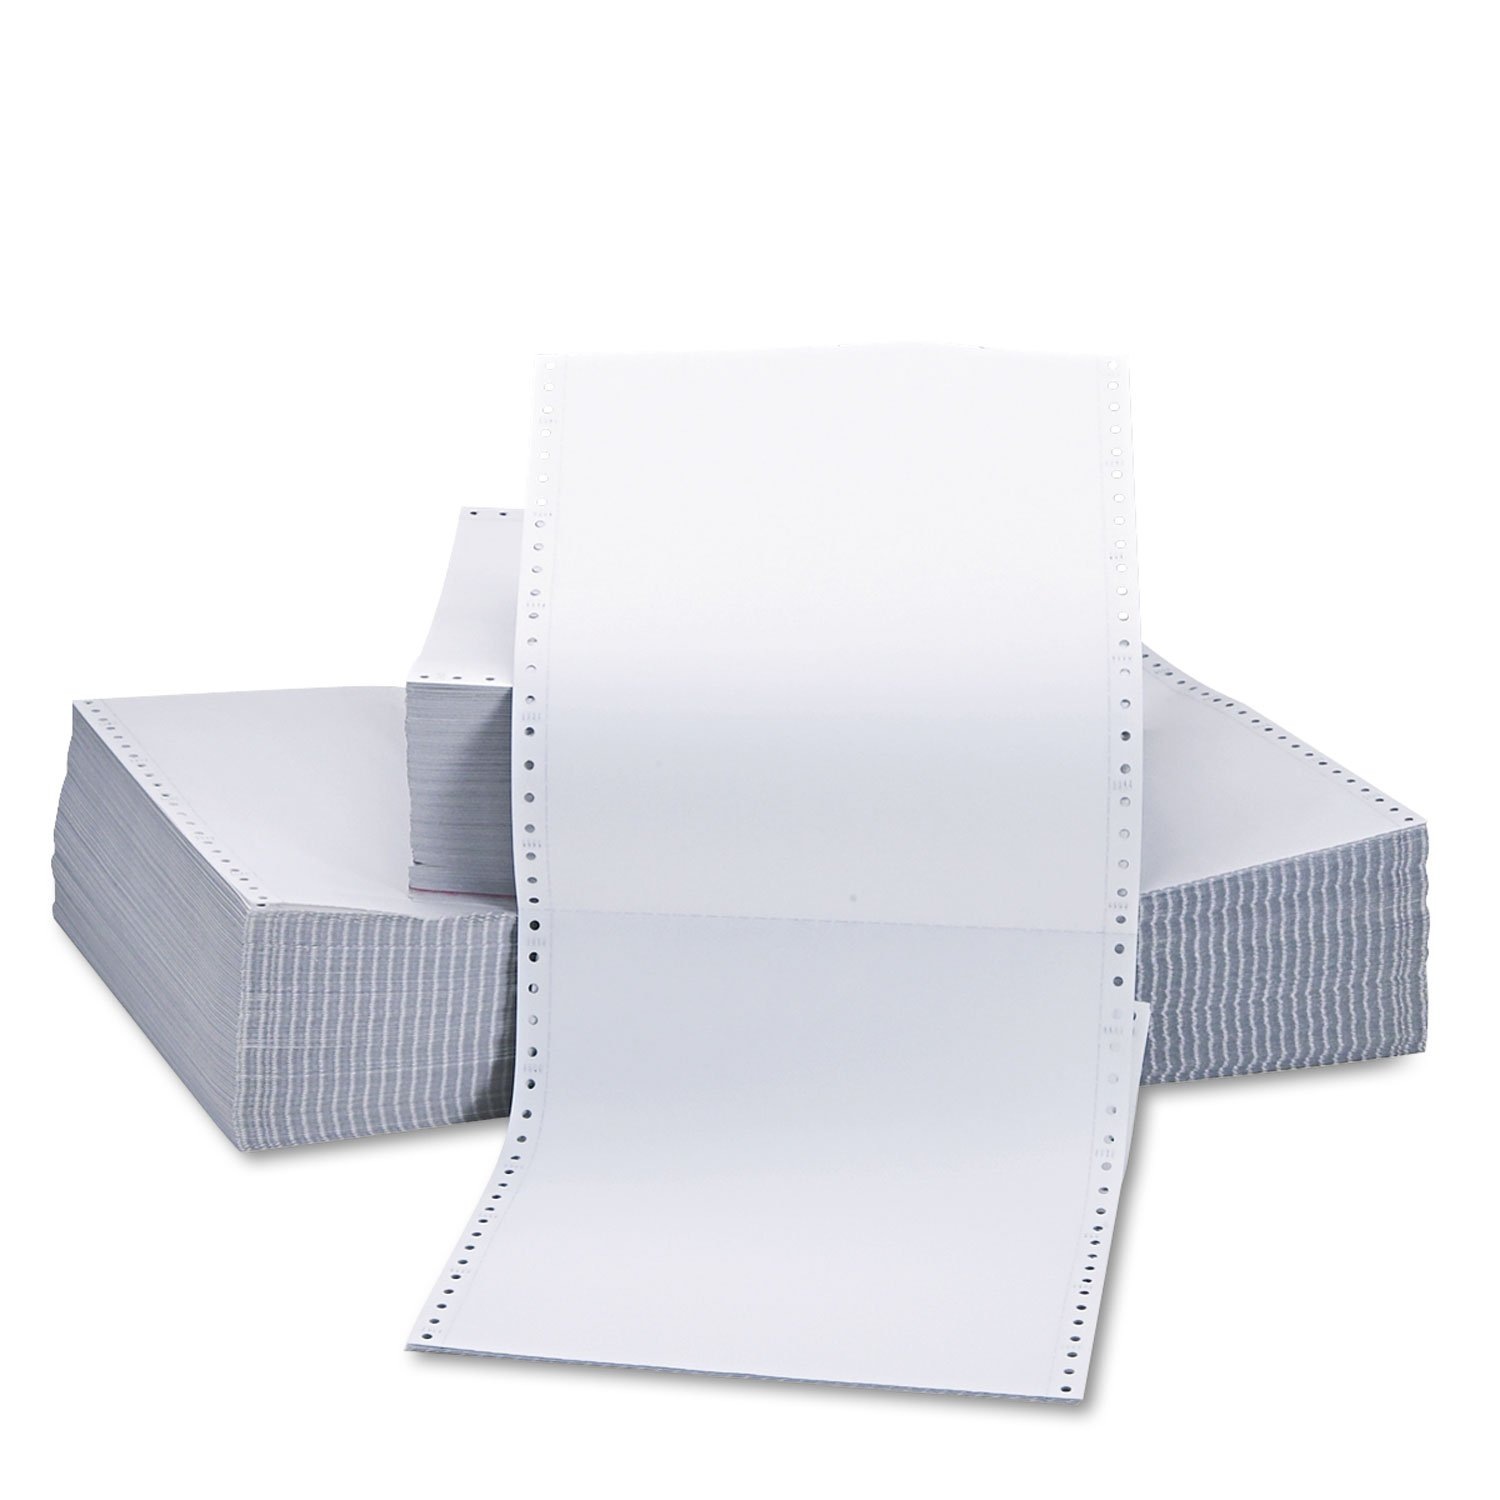 Universal Two-Part Carbonless Paper, 15Lb, 9-1/2 X 11, Perforated, White, 1650 Sheets by Universal